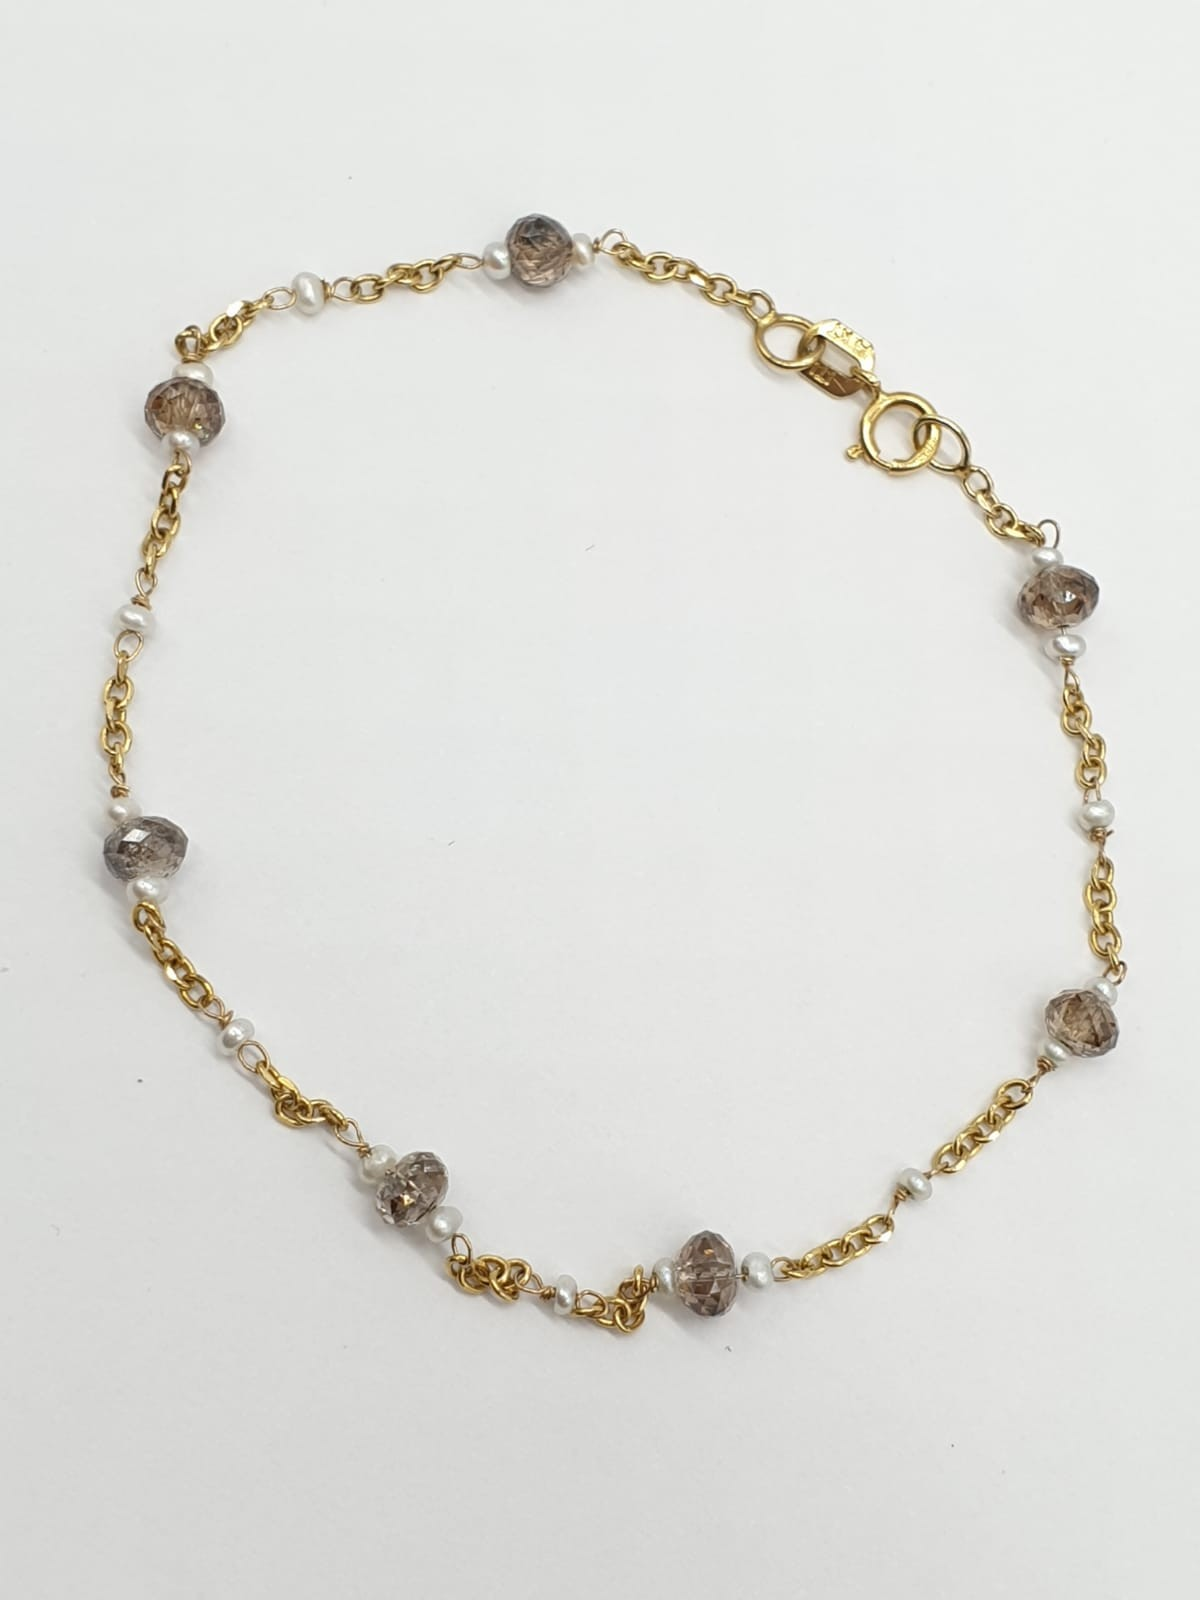 14ct gold brown diamond and pearl necklace with matching bracelet, total weight 5.6g and over 9ct - Image 2 of 6